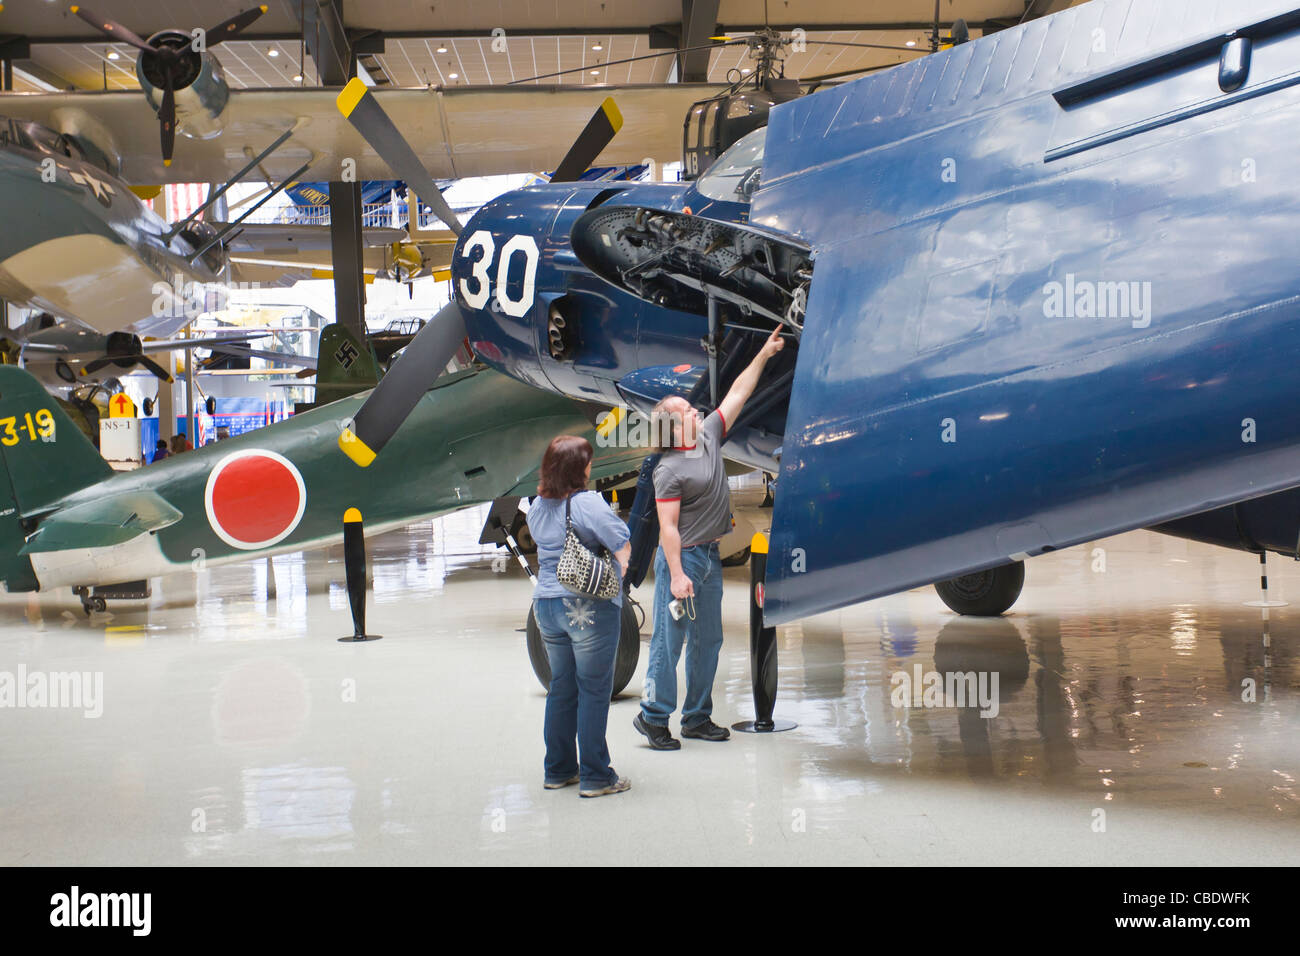 National Naval Aviation Museum in Pensacola Florida - Stock Image